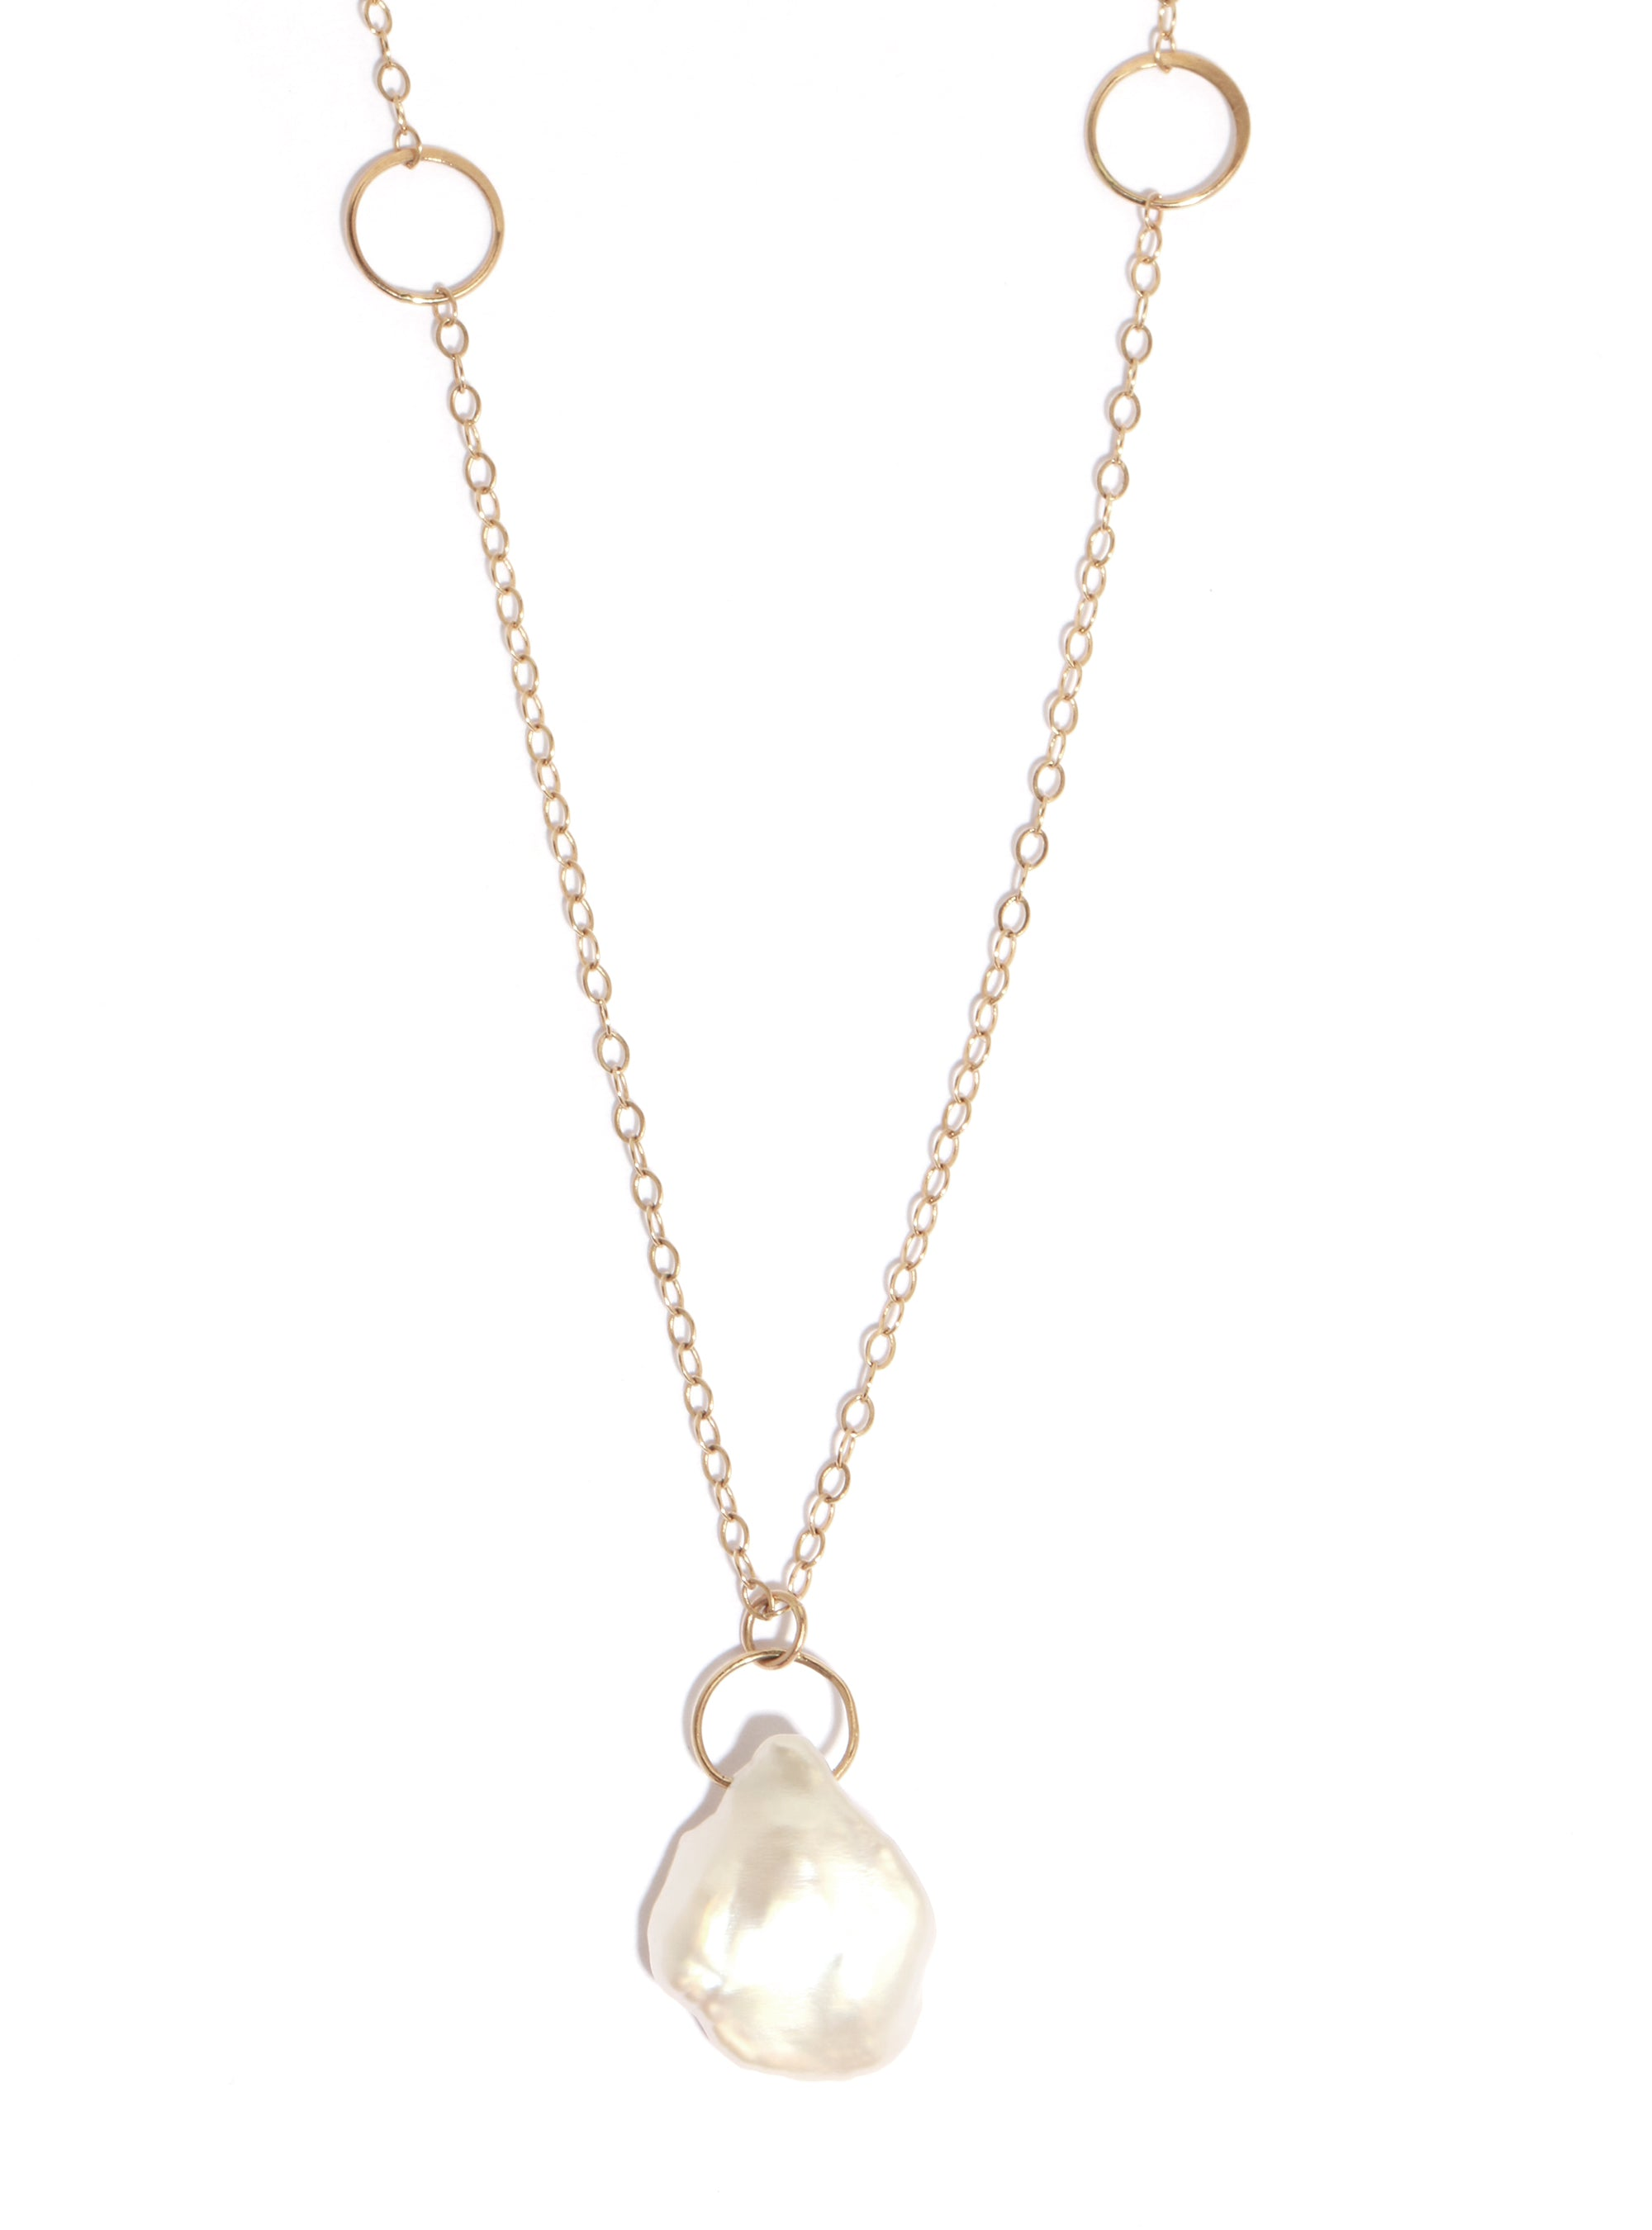 Pearl Drop Necklace - Melissa Joy Manning Jewelry